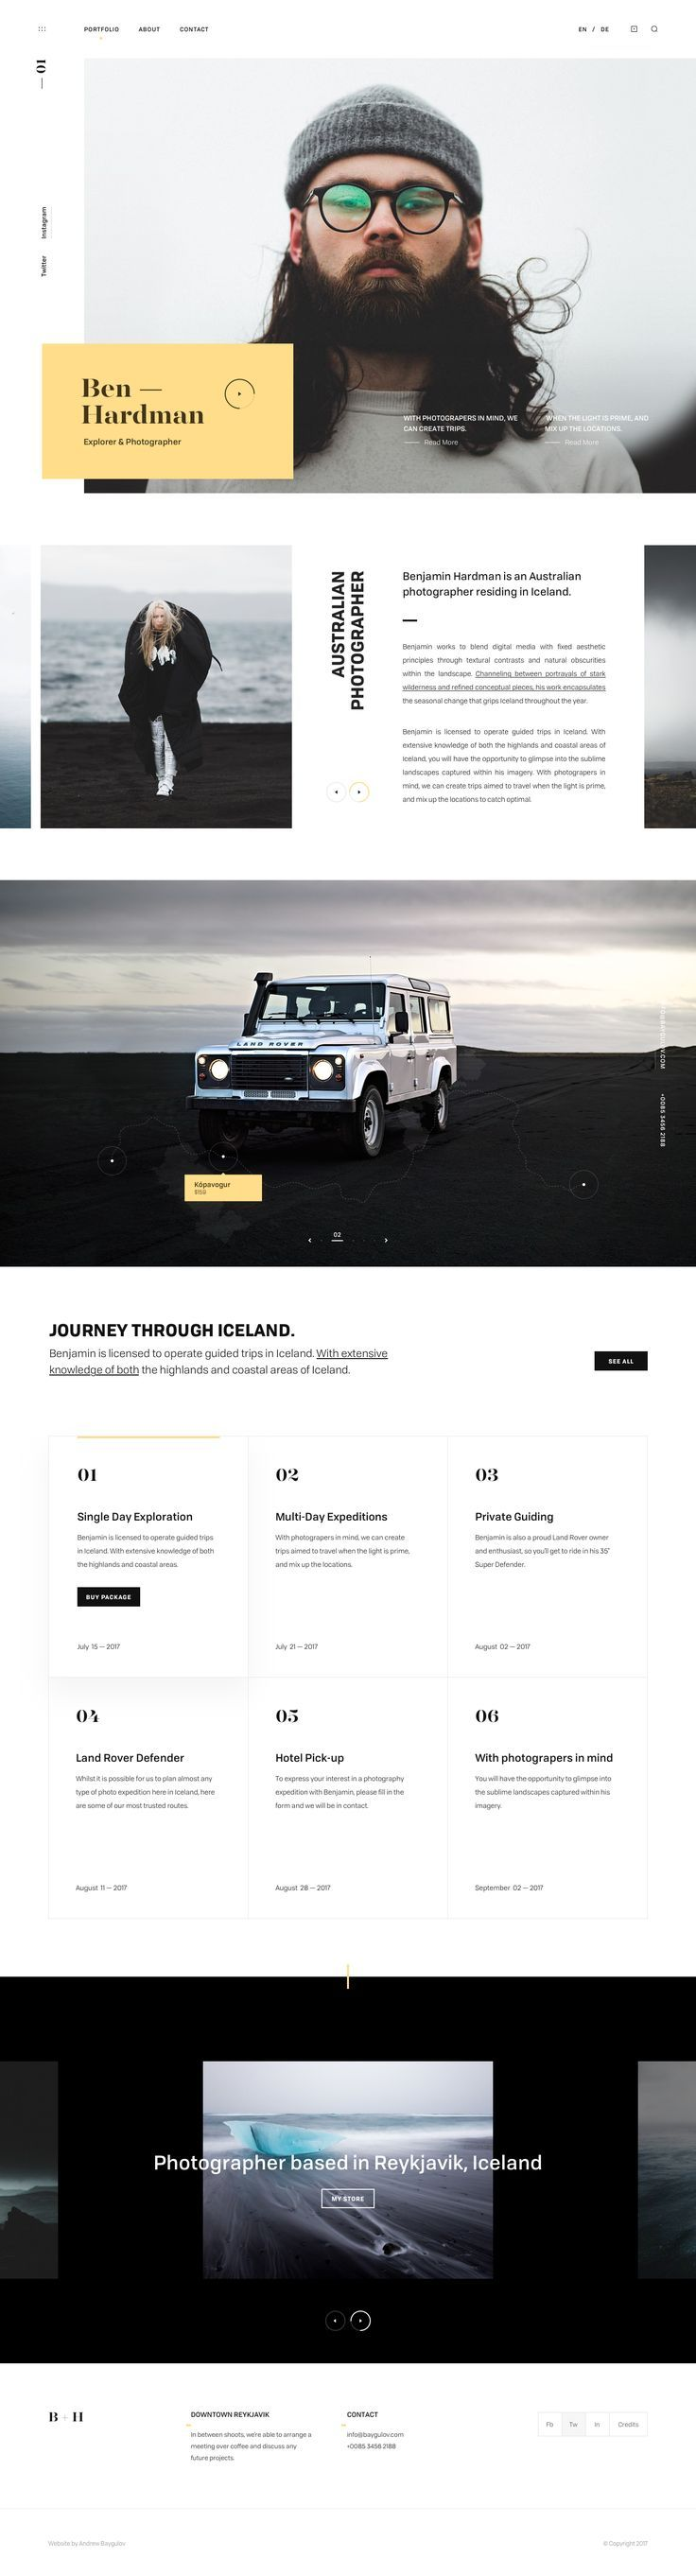 Homepage clean white grid web design